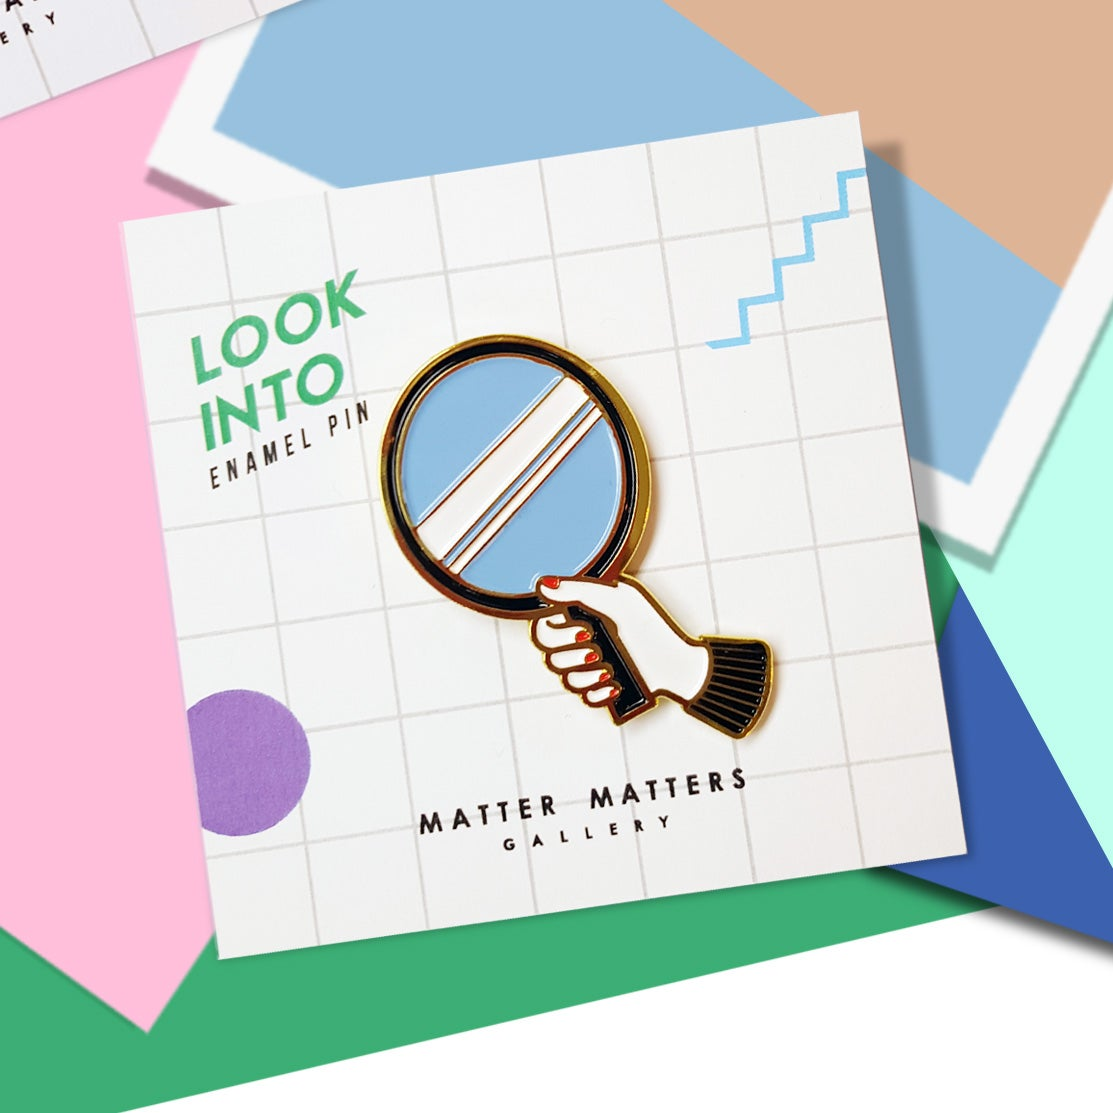 Image of Look into- Enamel pin